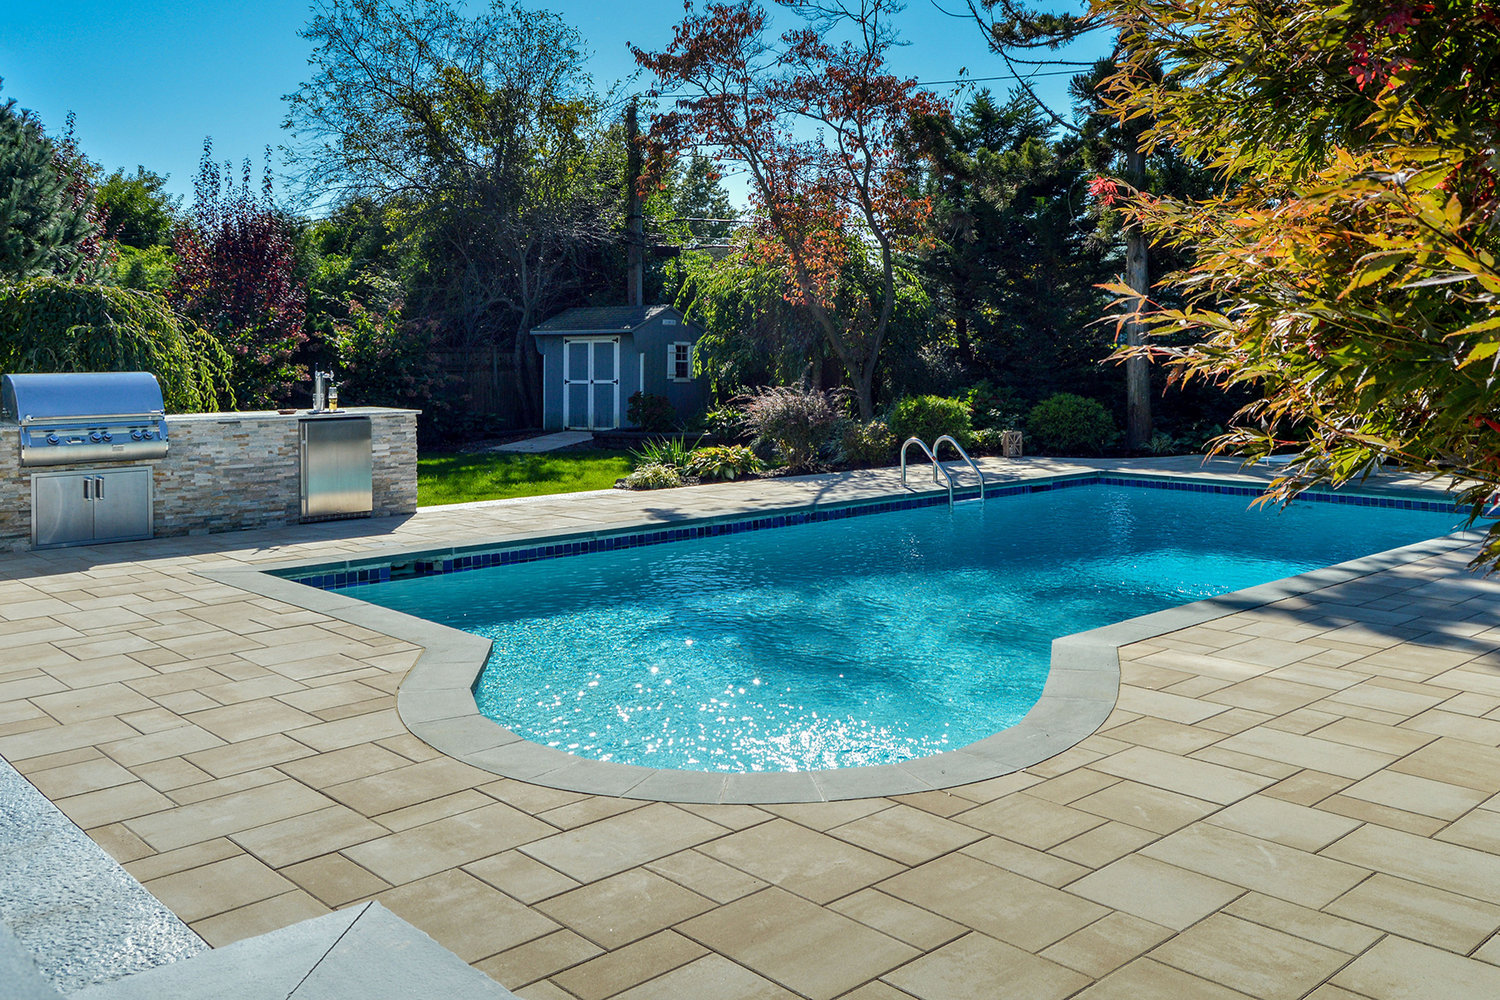 Swimming Pool Designs in Long Island, NY — Above All Masonry on residential house designs, residential stairway designs, residential ceiling designs, swim up table designs, residential courtyard designs, residential waterfall designs, residential lighting design, residential bathroom designs, residential fence designs, residential front gate designs, residential bar designs, residential fireplace designs, residential kitchen designs, residential porch designs, residential property management, residential poolside bars, residential pond designs, residential fire pit designs, residential deck designs, residential interior design,